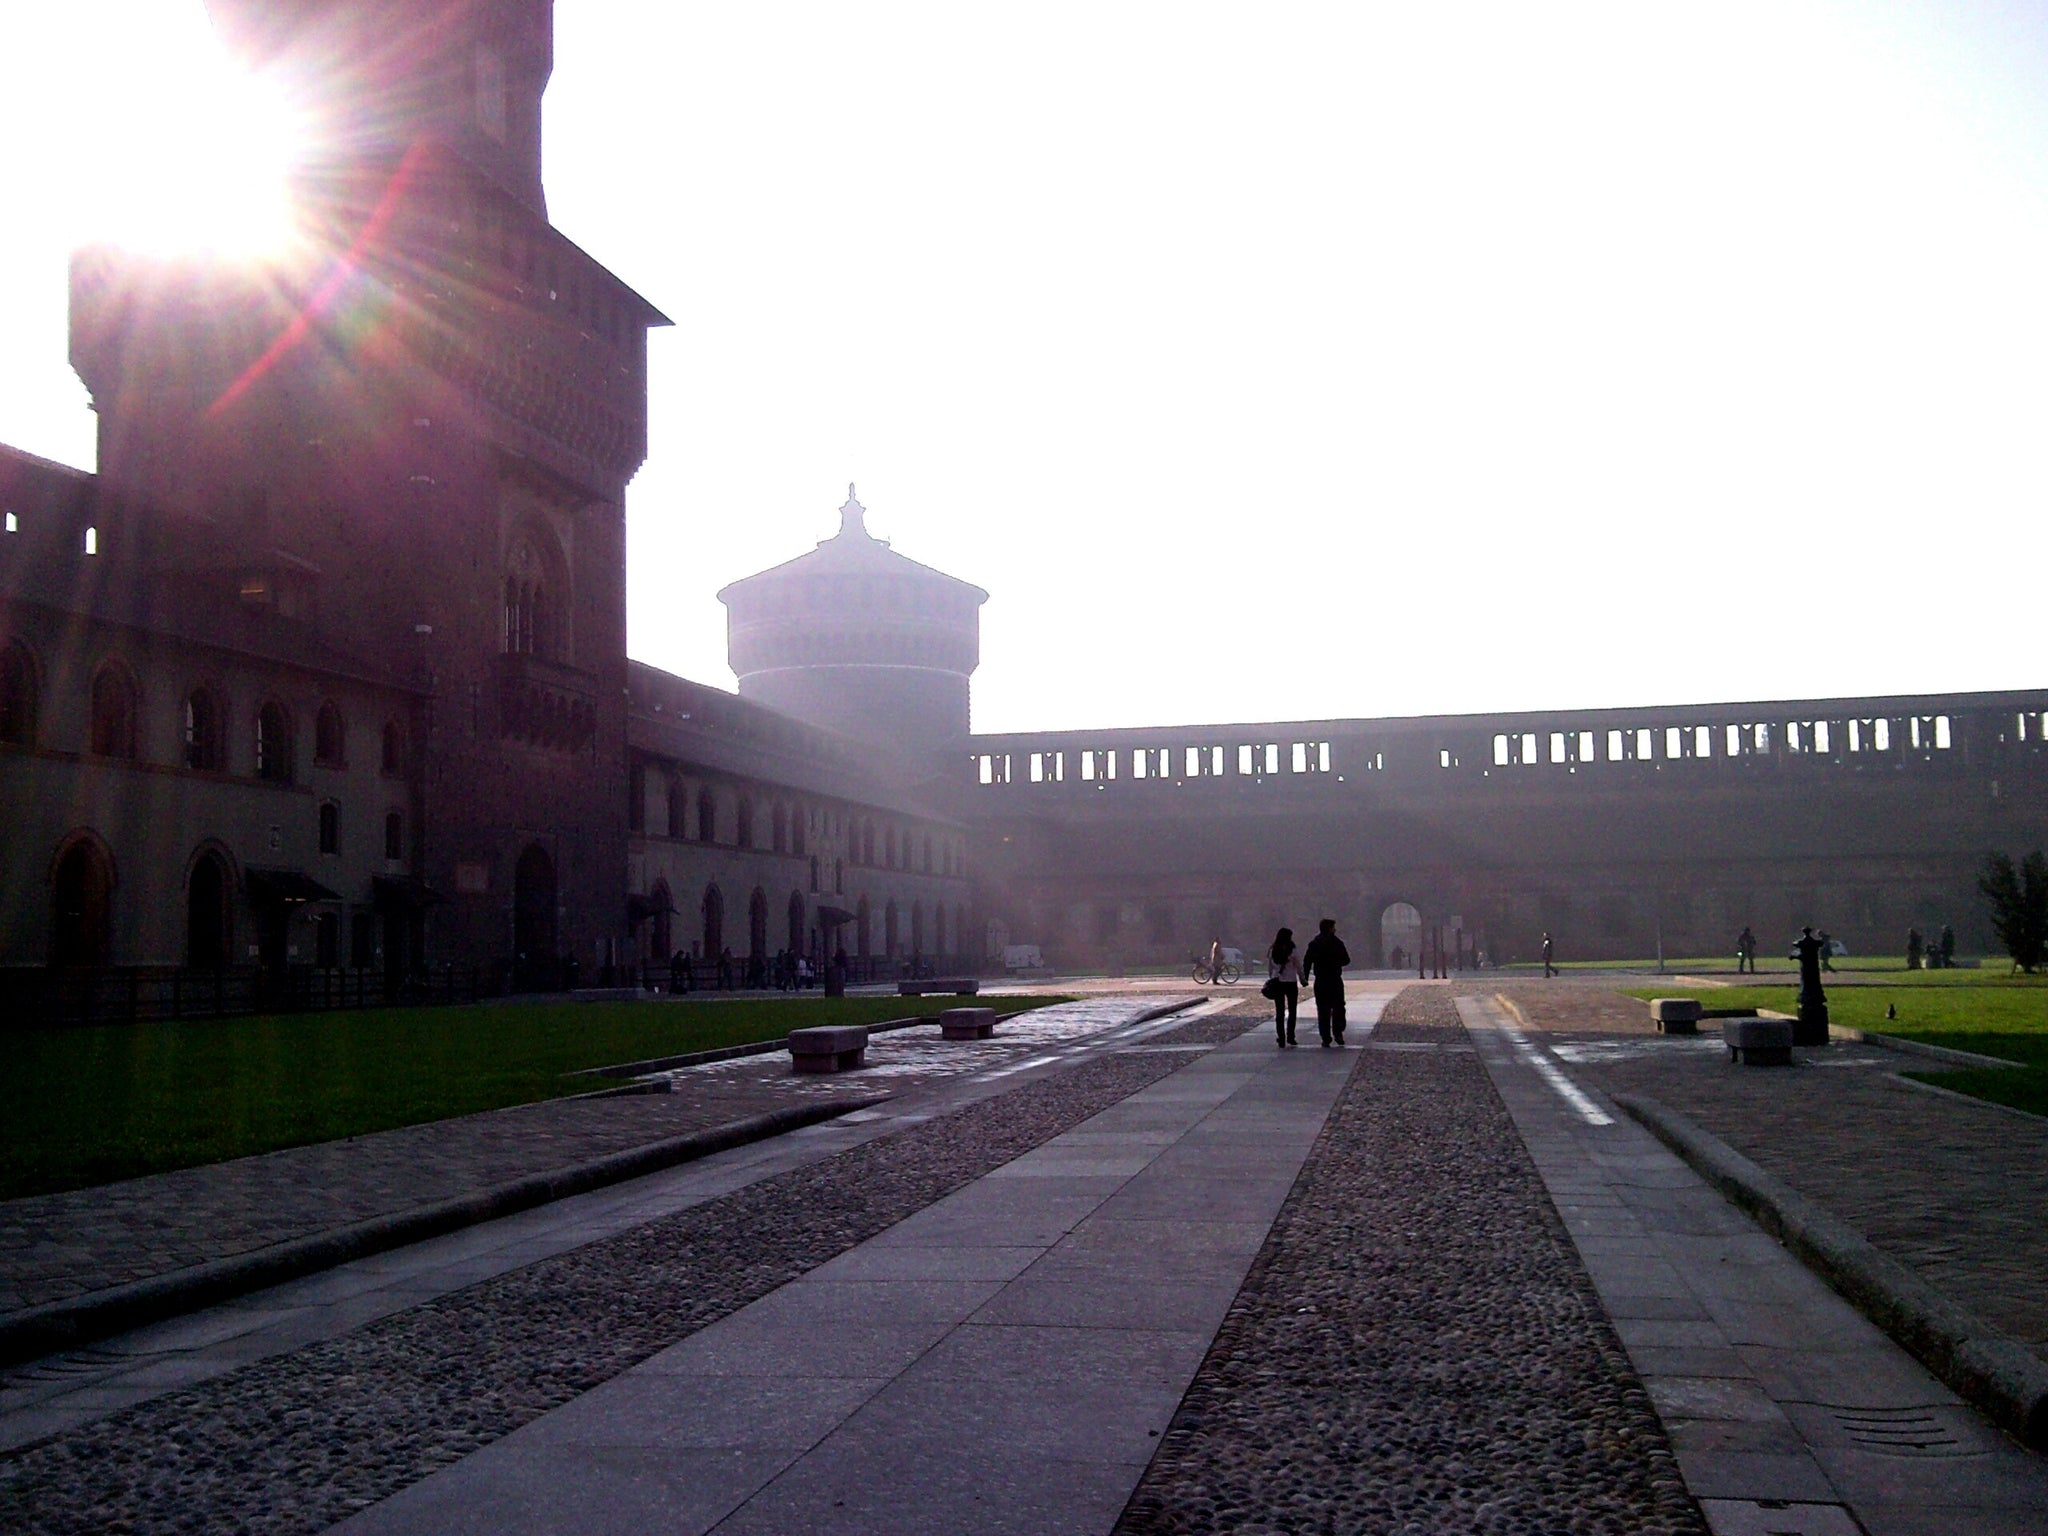 Inside the Castello Forzesco in Milan